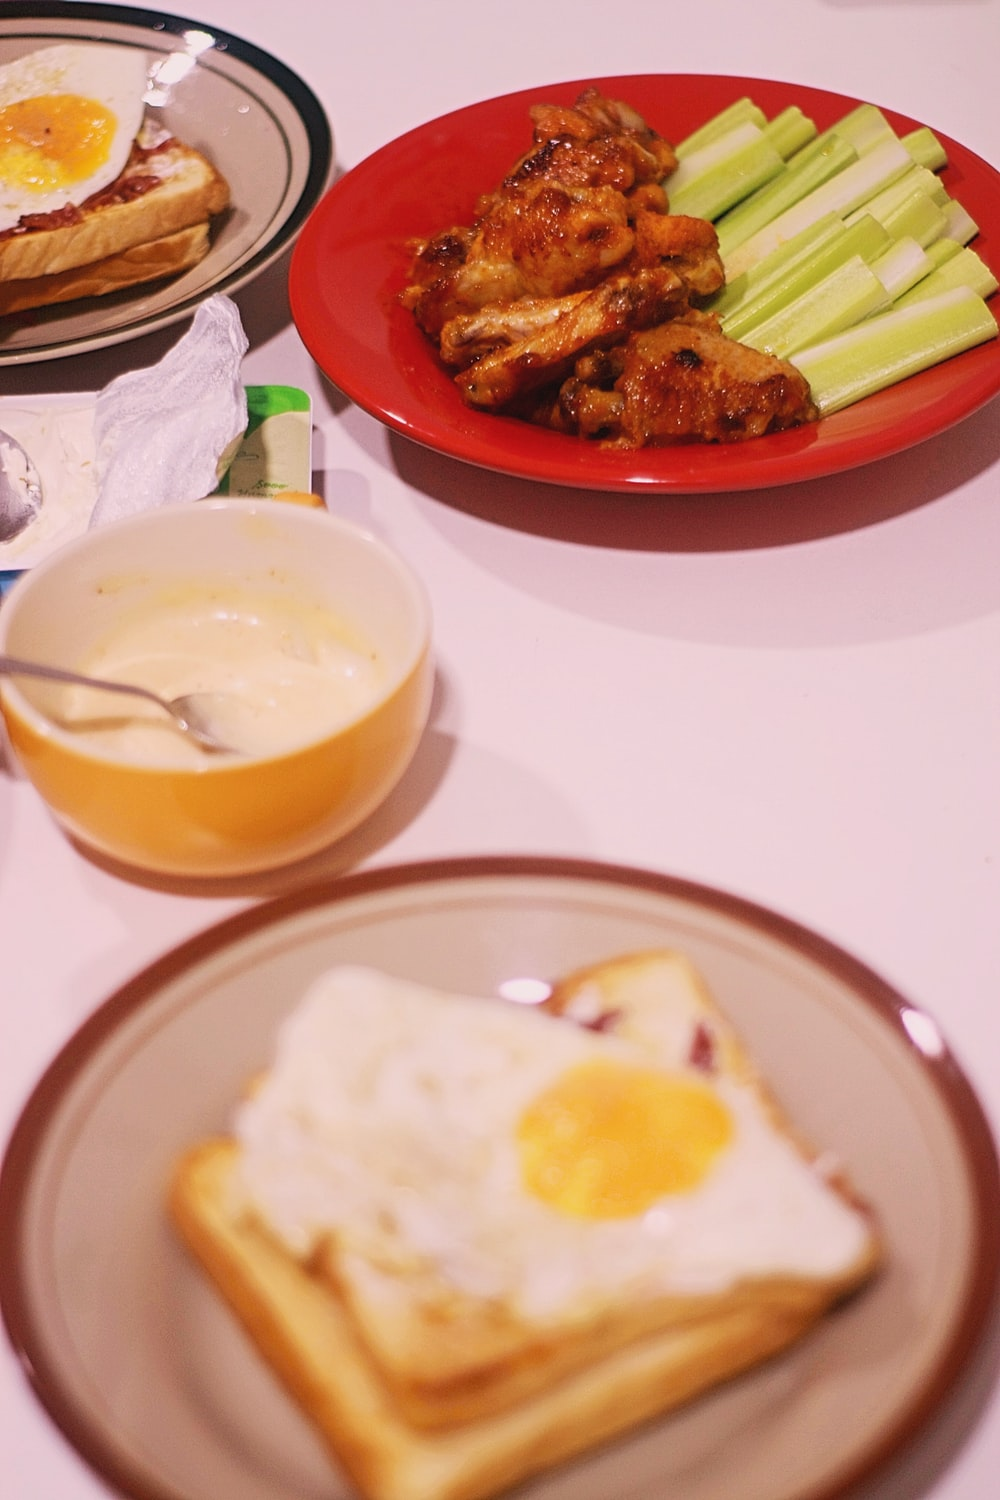 grilled meat with fried egg and bread